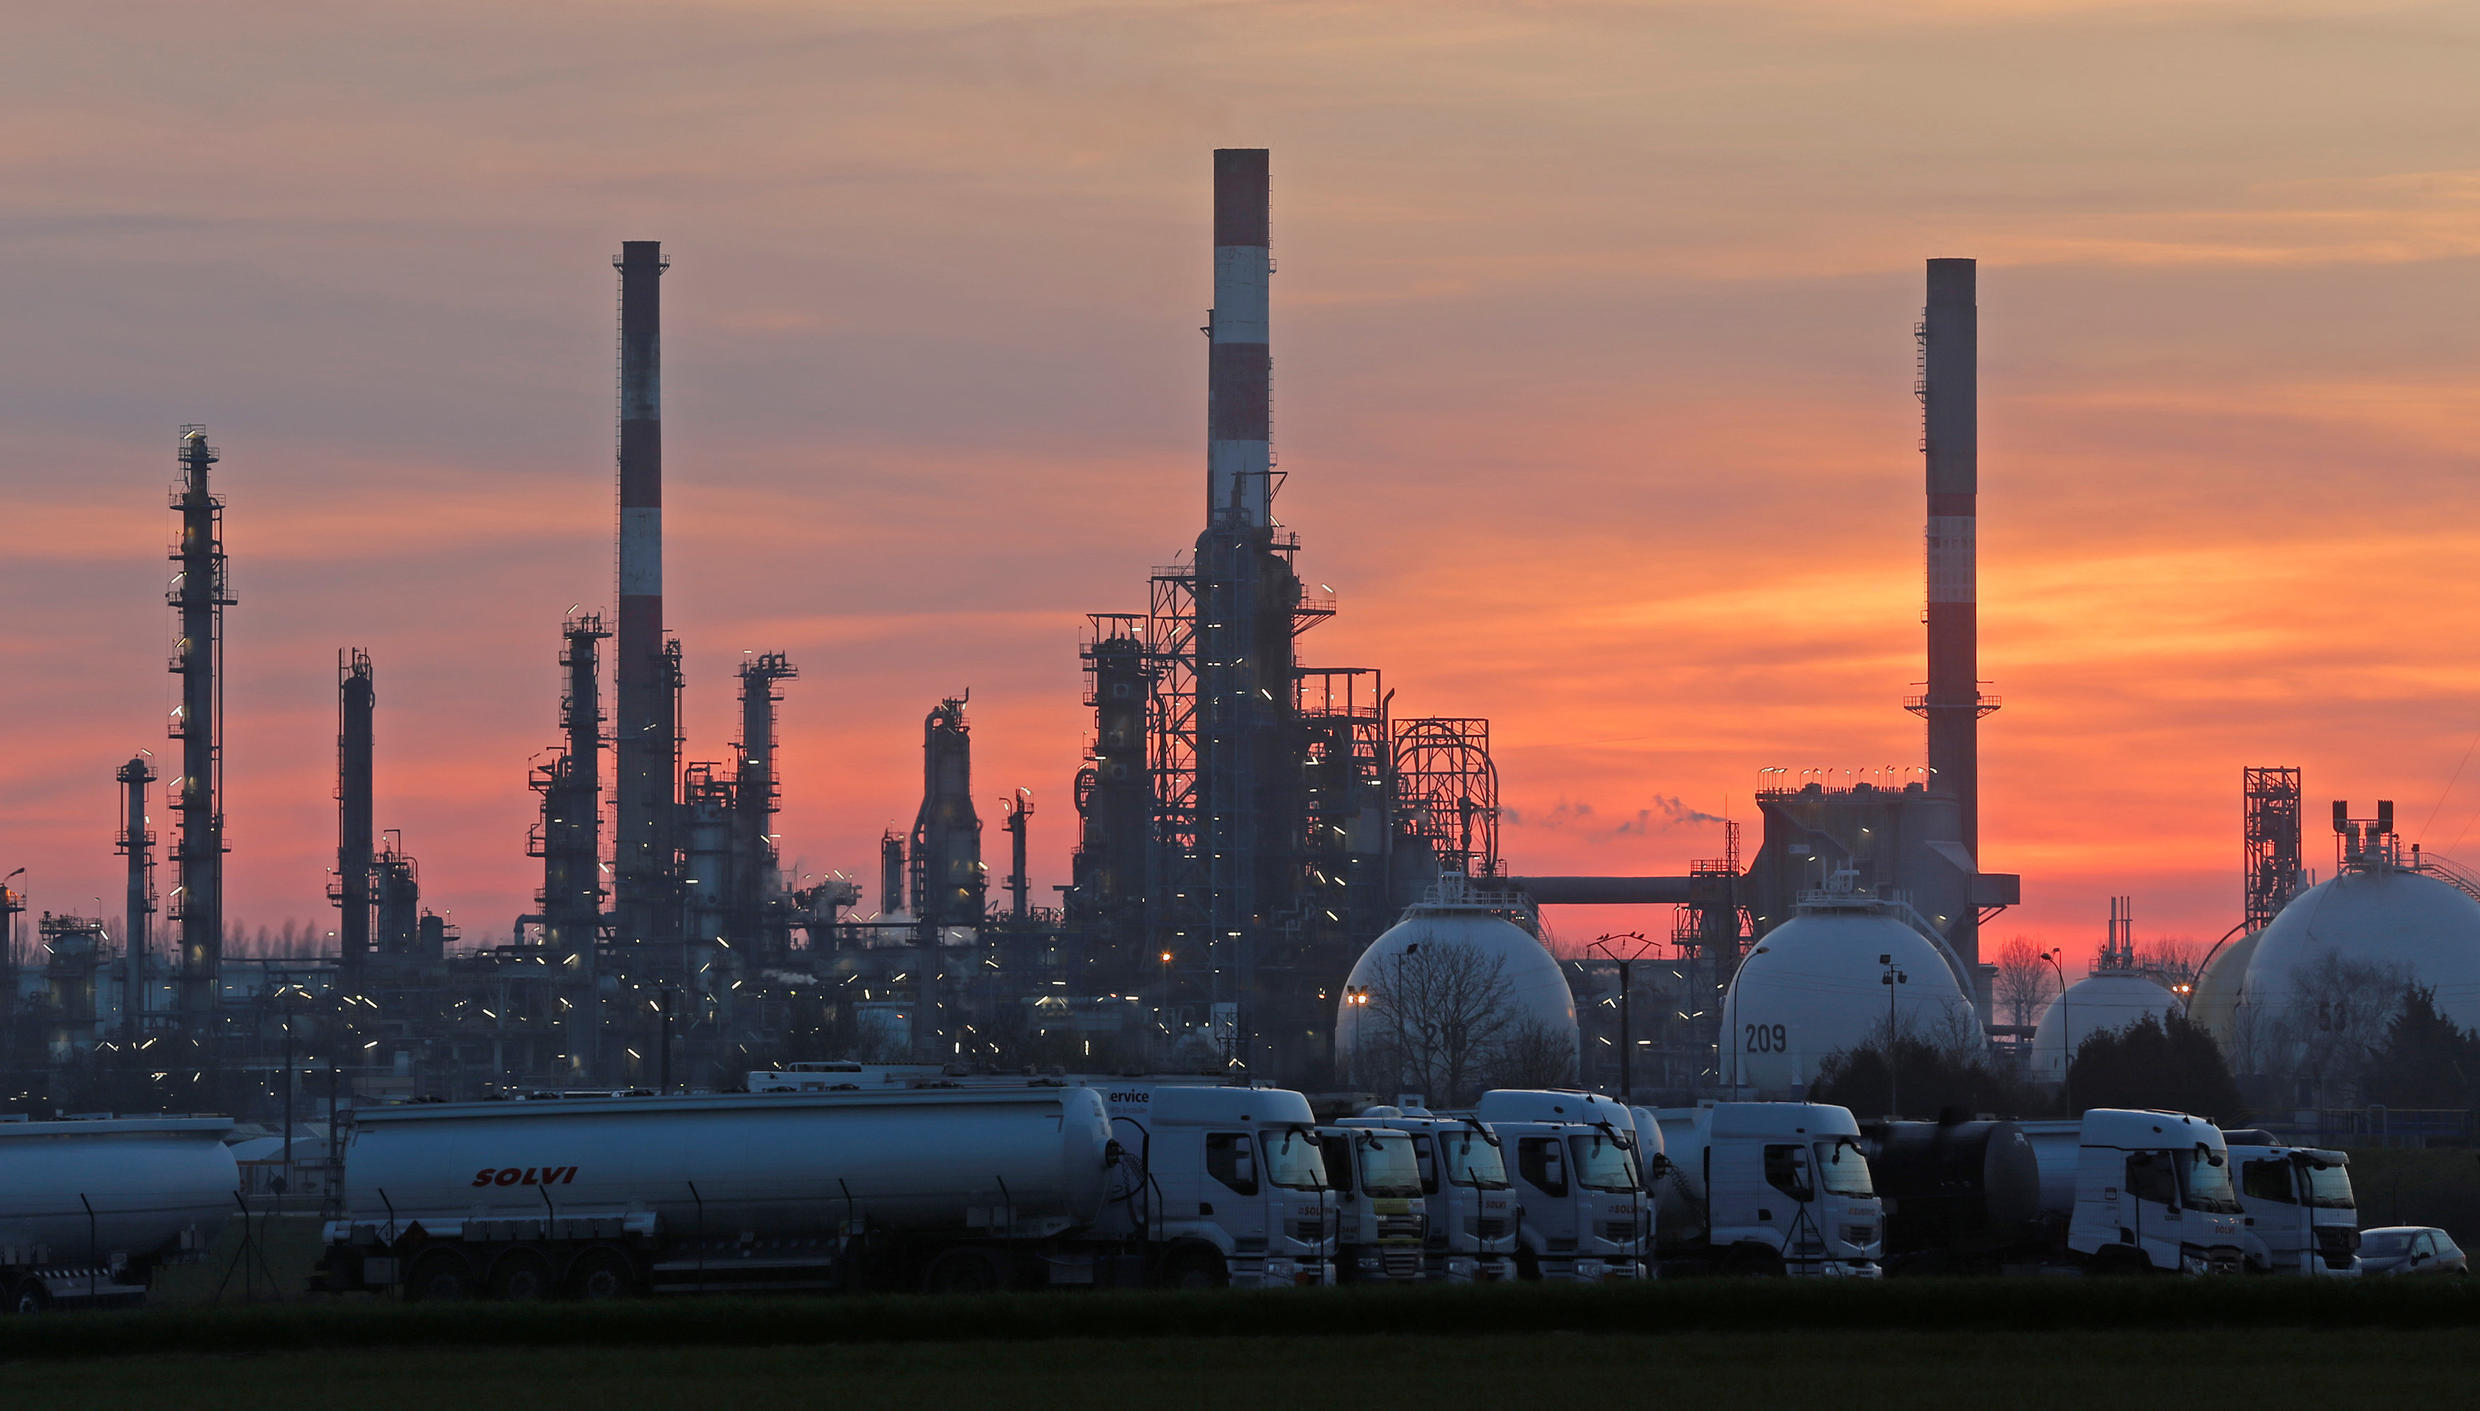 The Total Grandpuits oil refinery and petrol depot southeast of Paris.